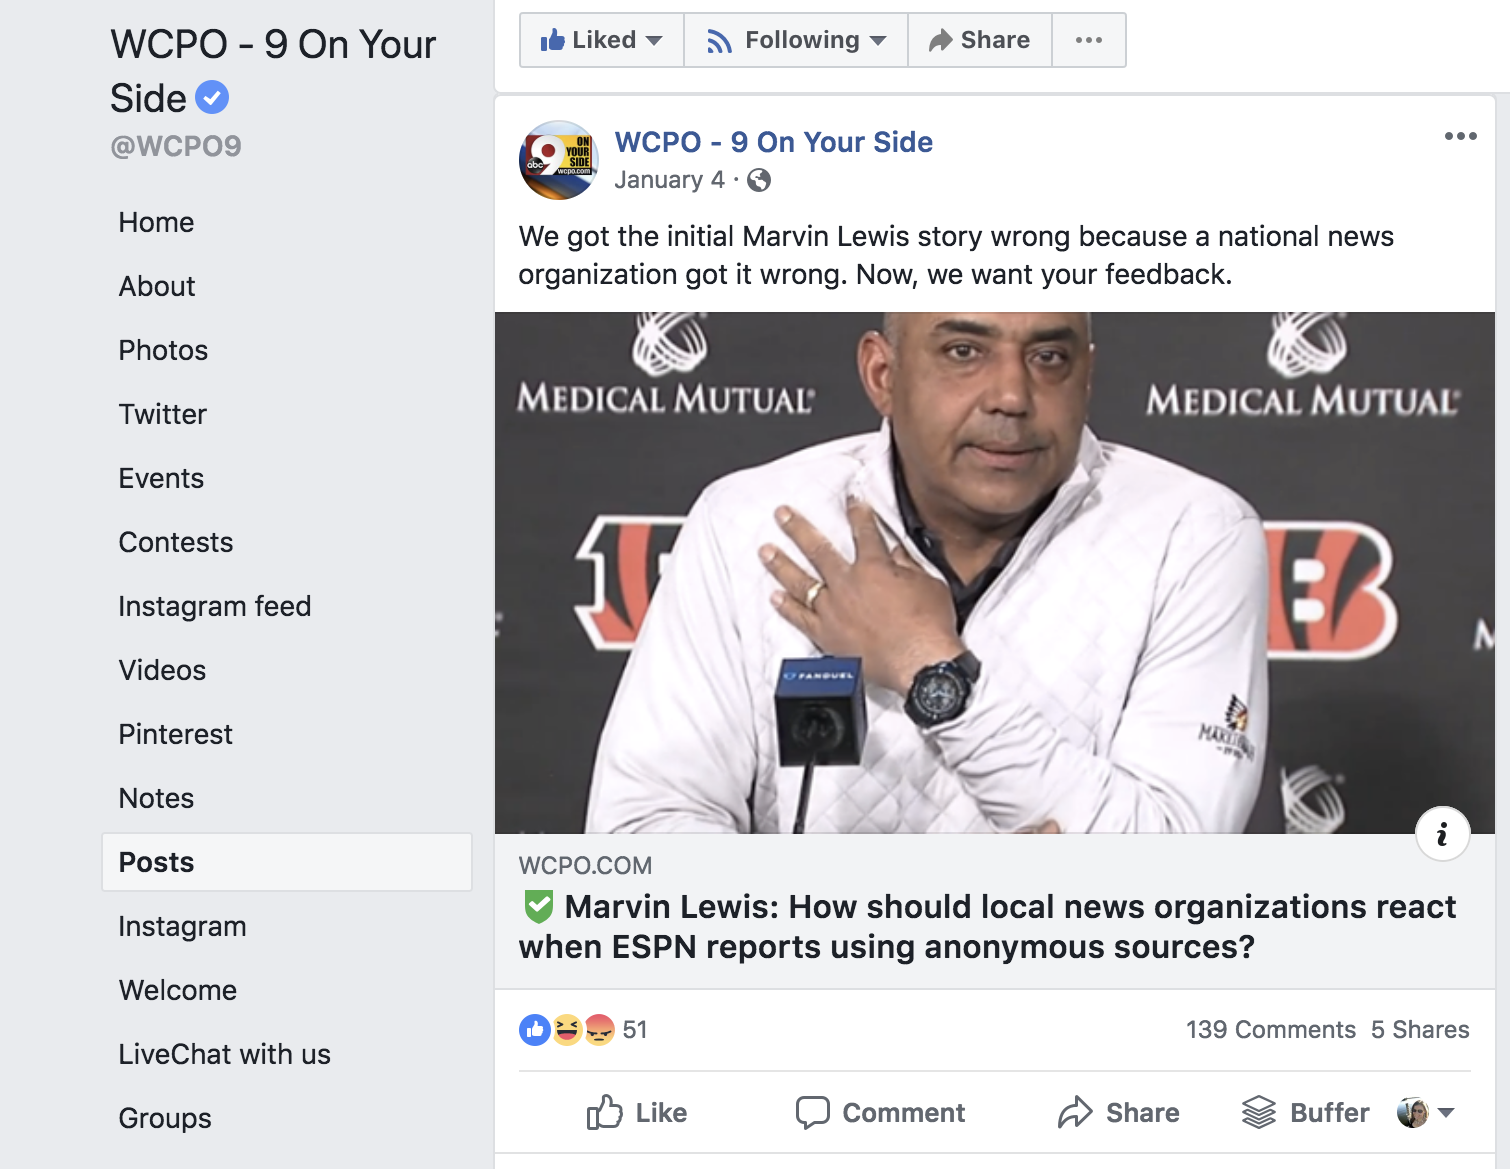 Screenshot from WCPO's Facebook page, showing an article where they asked for reader feedback.